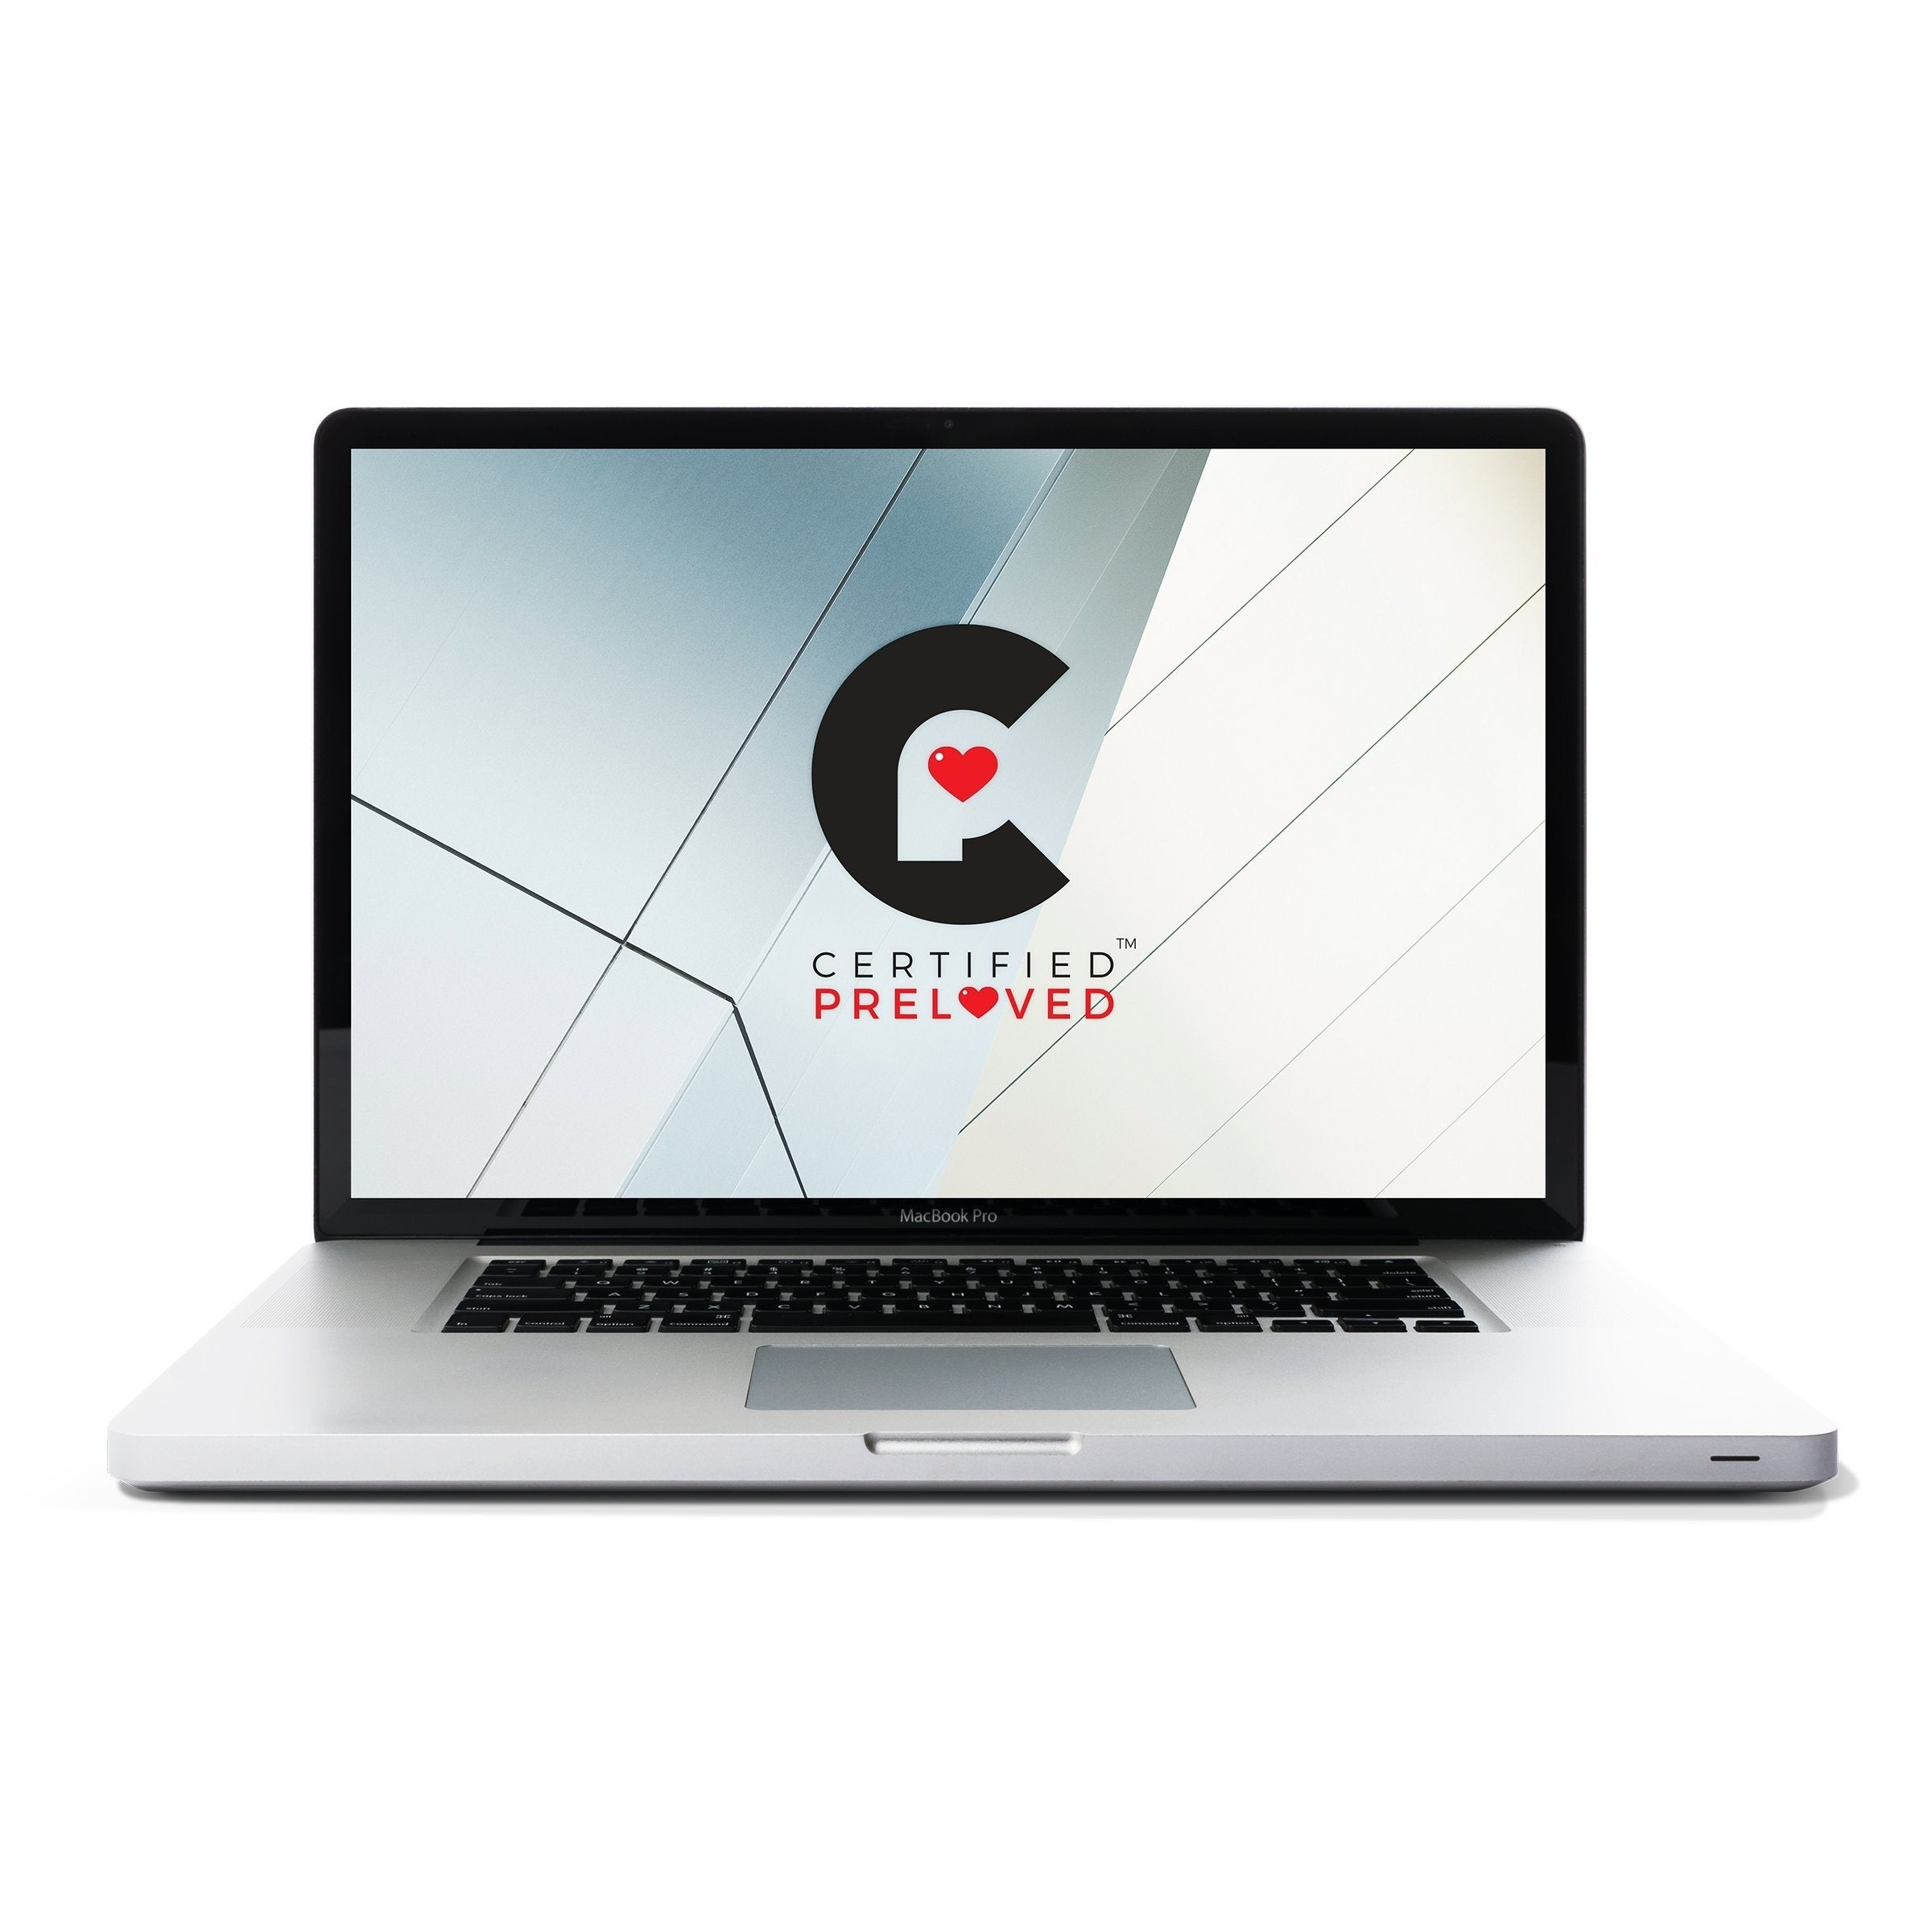 Apple MD311LL/A 17 inch Macbook Pro QCi7 2.4 GHz - Refurbished by Overstock 1tb hdd - 8 GB